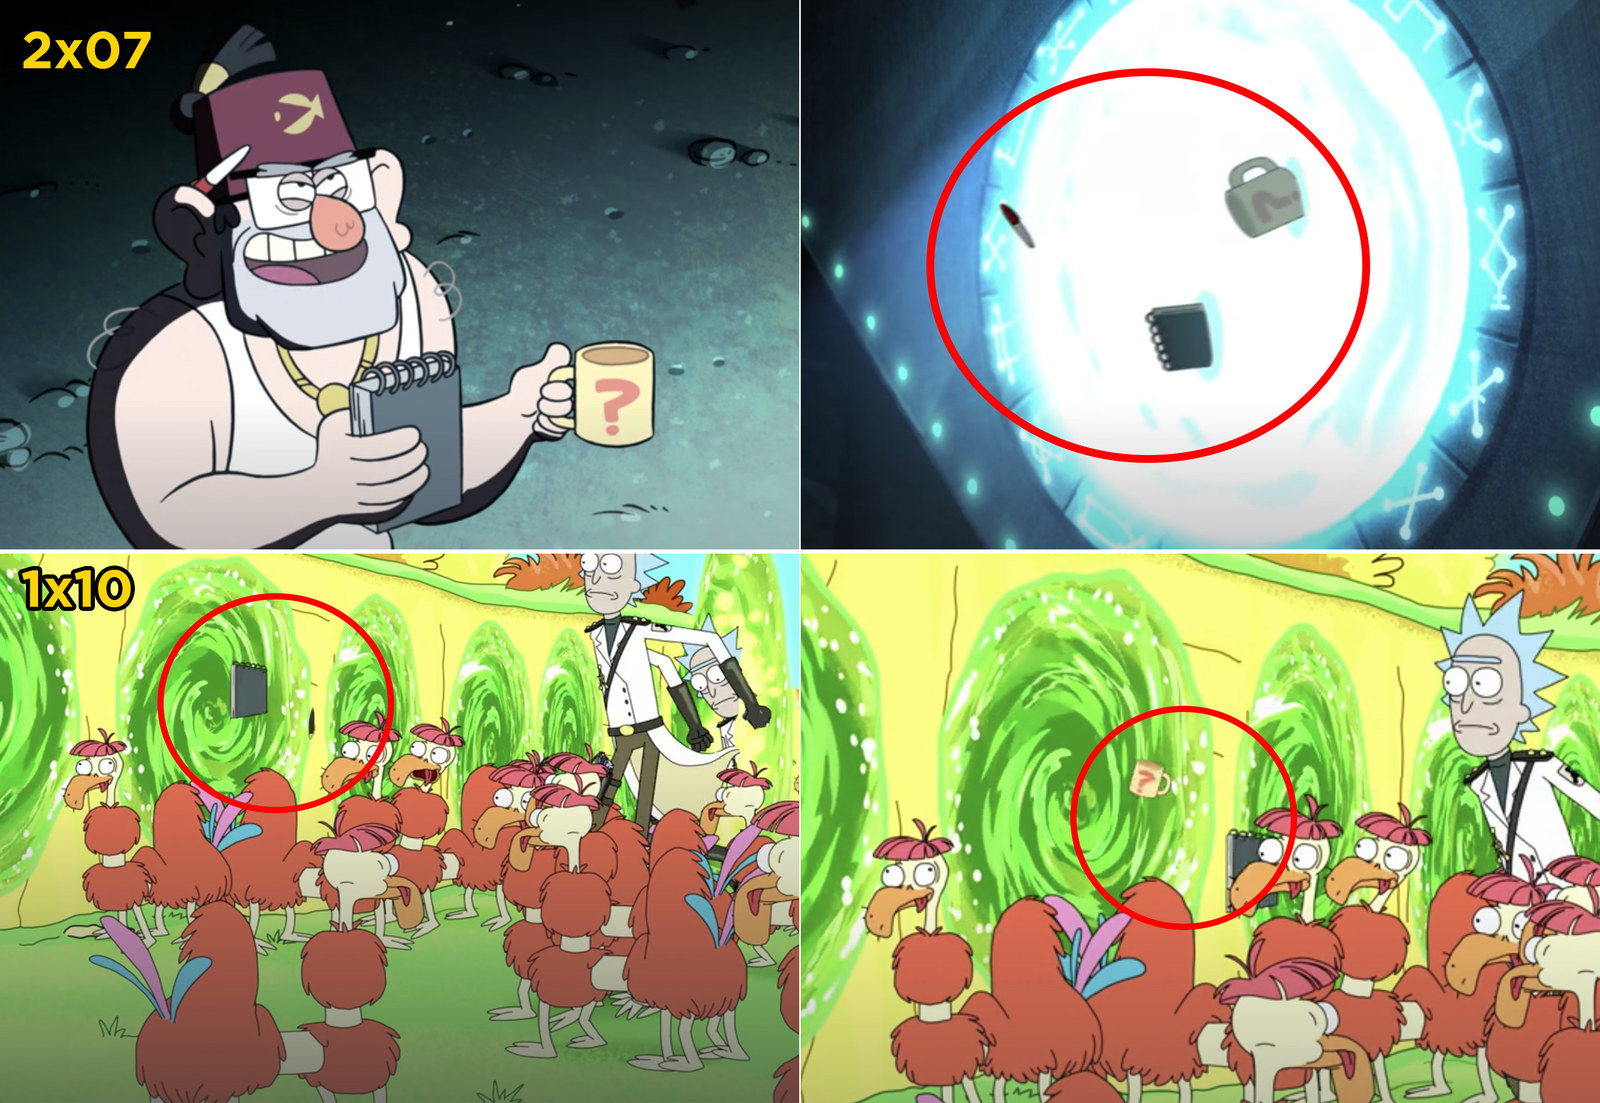 And finally, in an episode of  Gravity Falls , Grunkle Stan's mug, notebook, and pen get sucked into an open portal. Later, in a  Rick and Morty  episode, you can see those  same objects  fly out of a portal Rick opens.